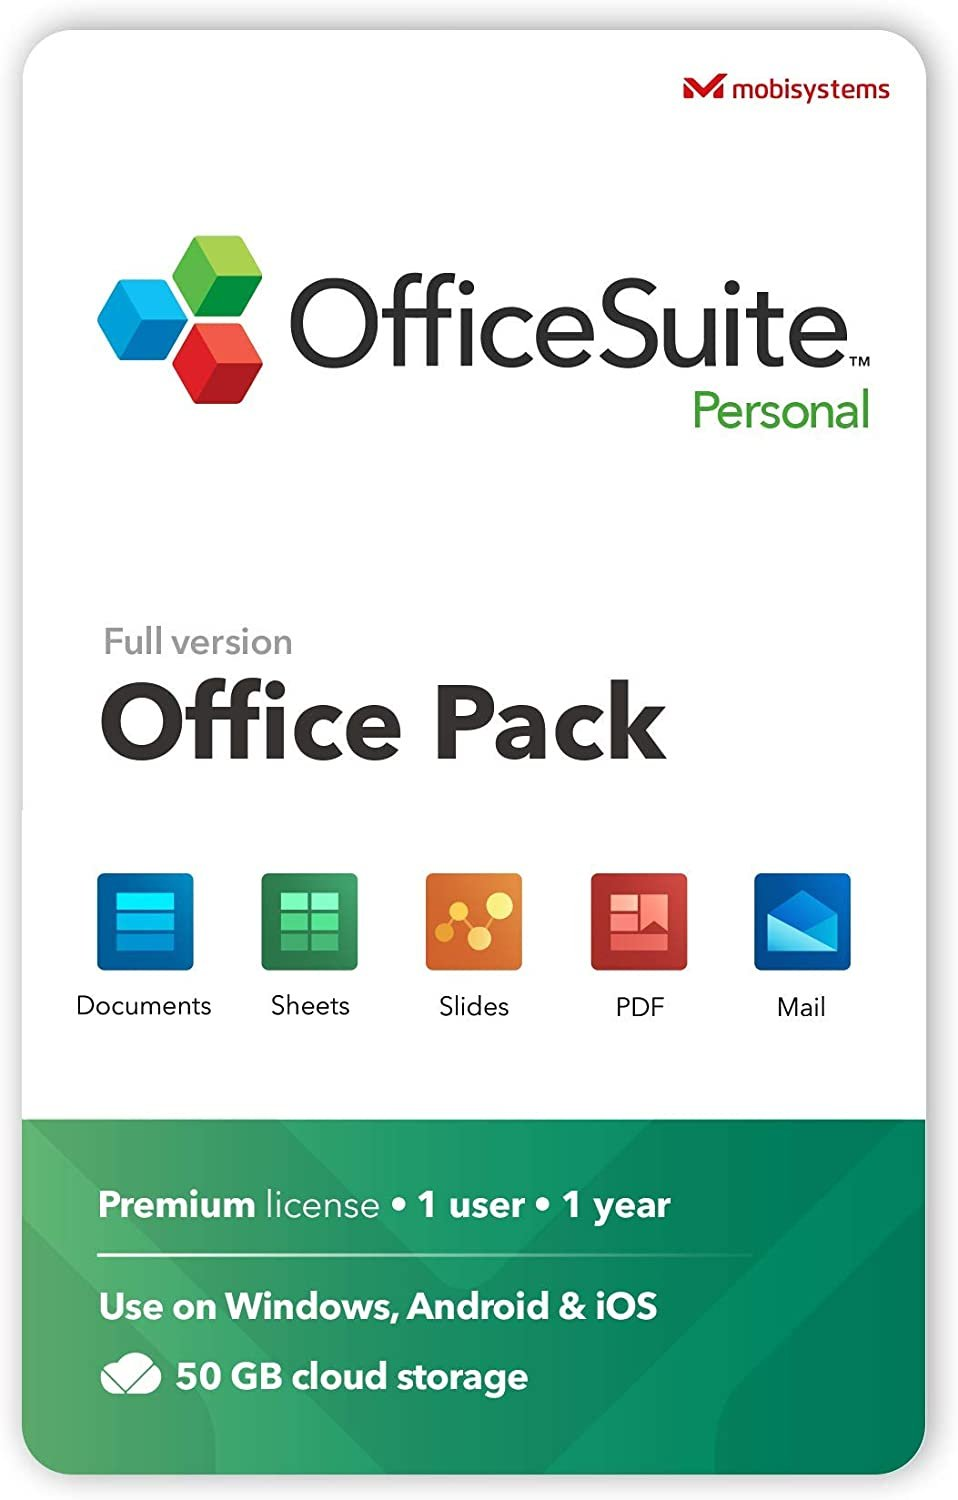 OfficeSuite Personal Compatible with Microsoft Excel& PowerPoint and Adobe PDF 1 Year License